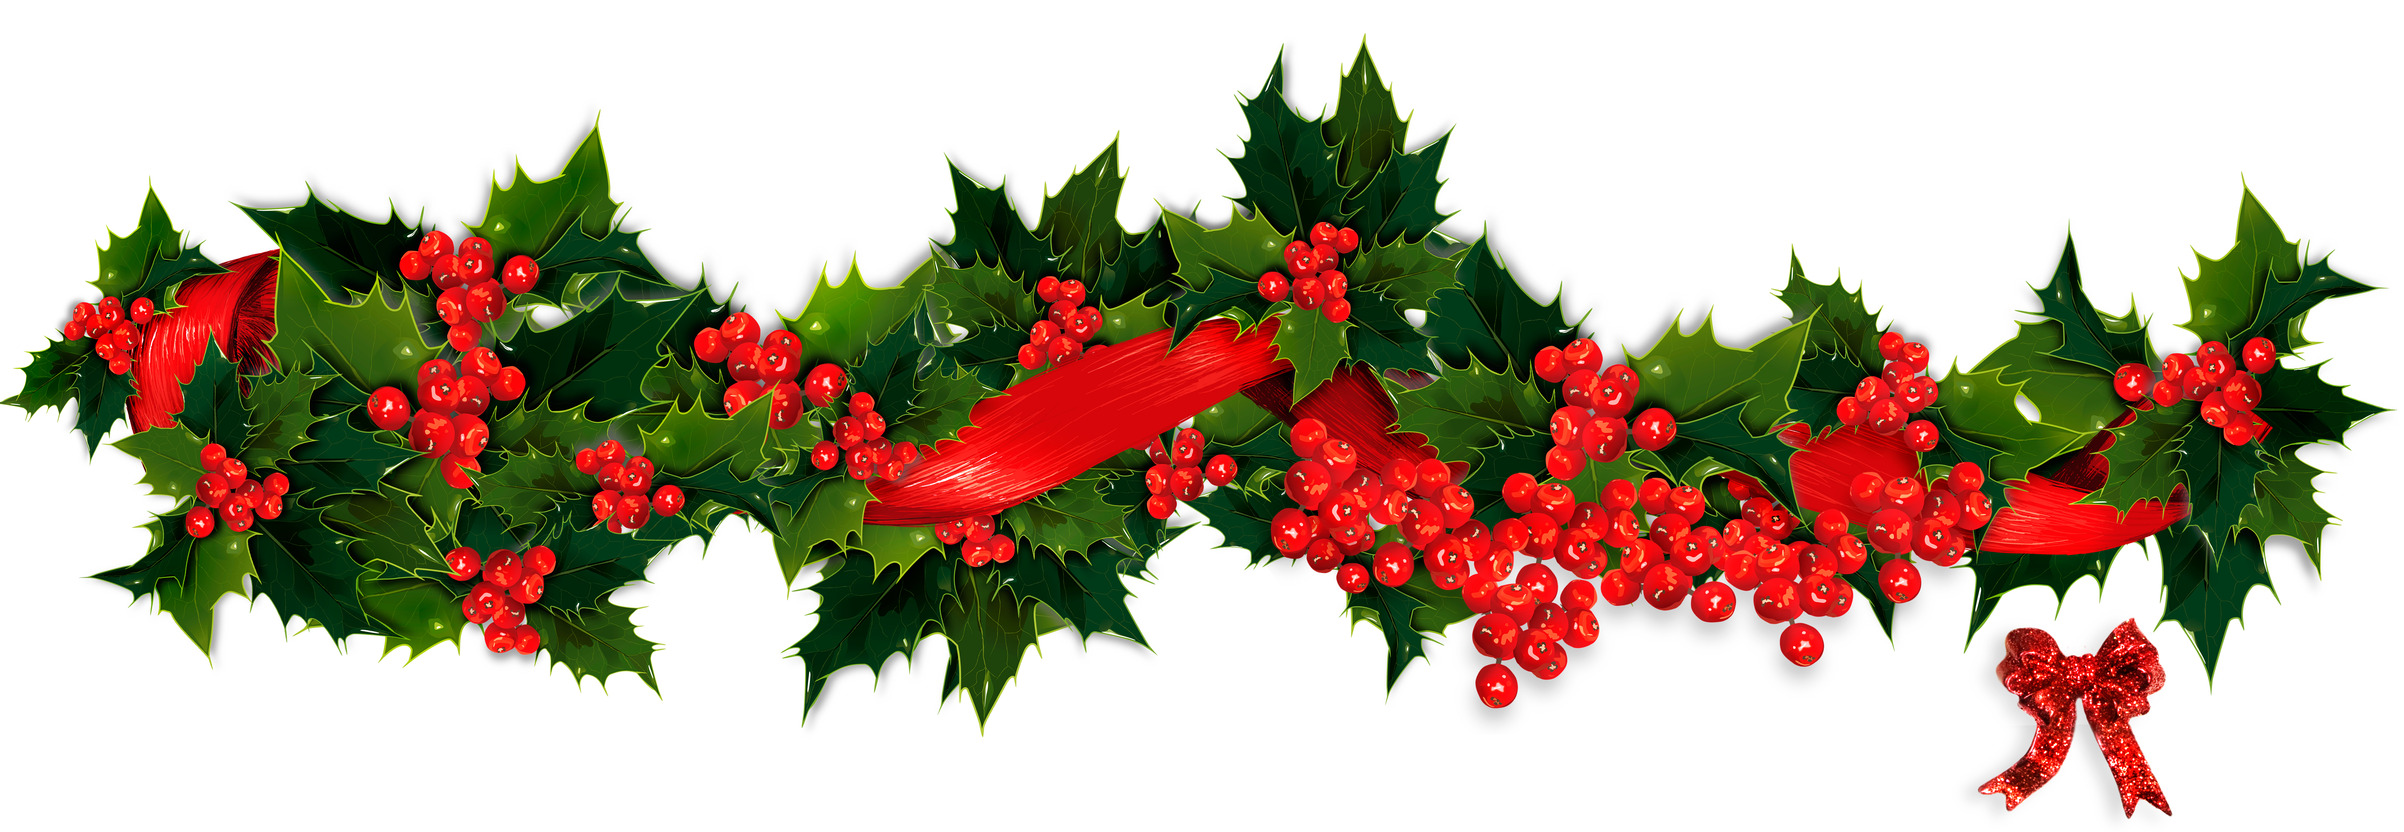 Collection of Garland clipart.